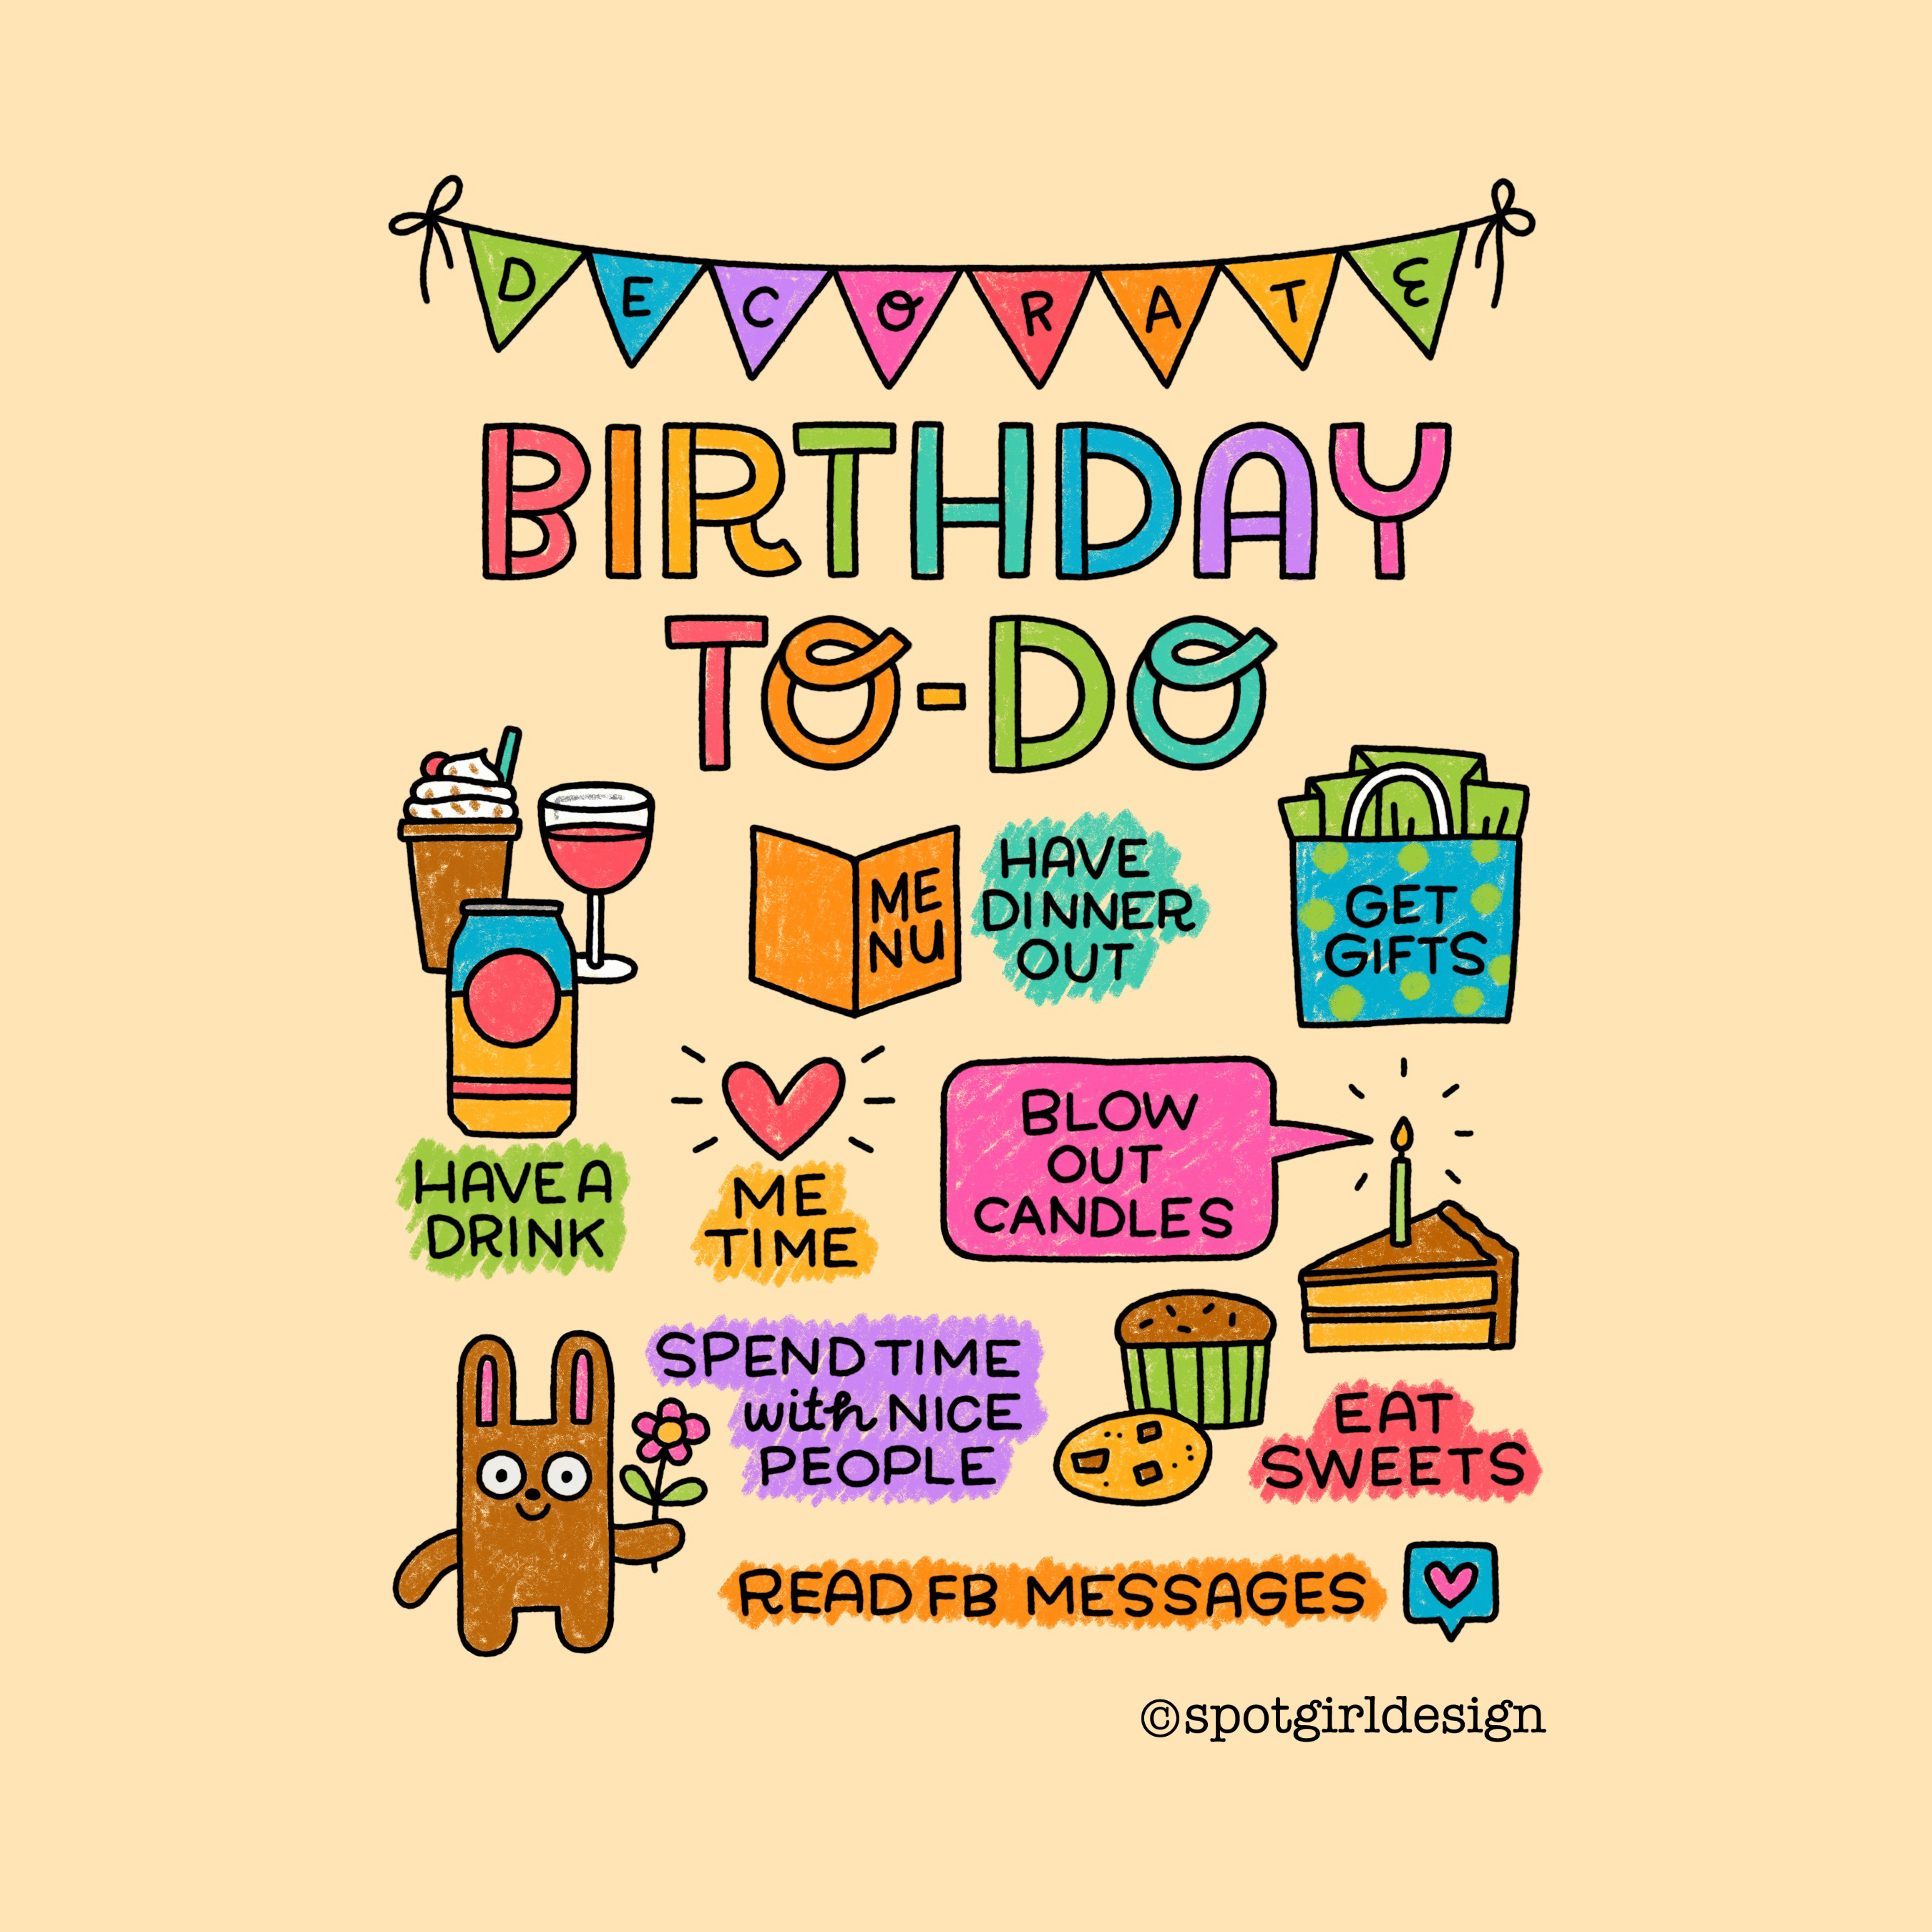 Birthday To-Do_tag